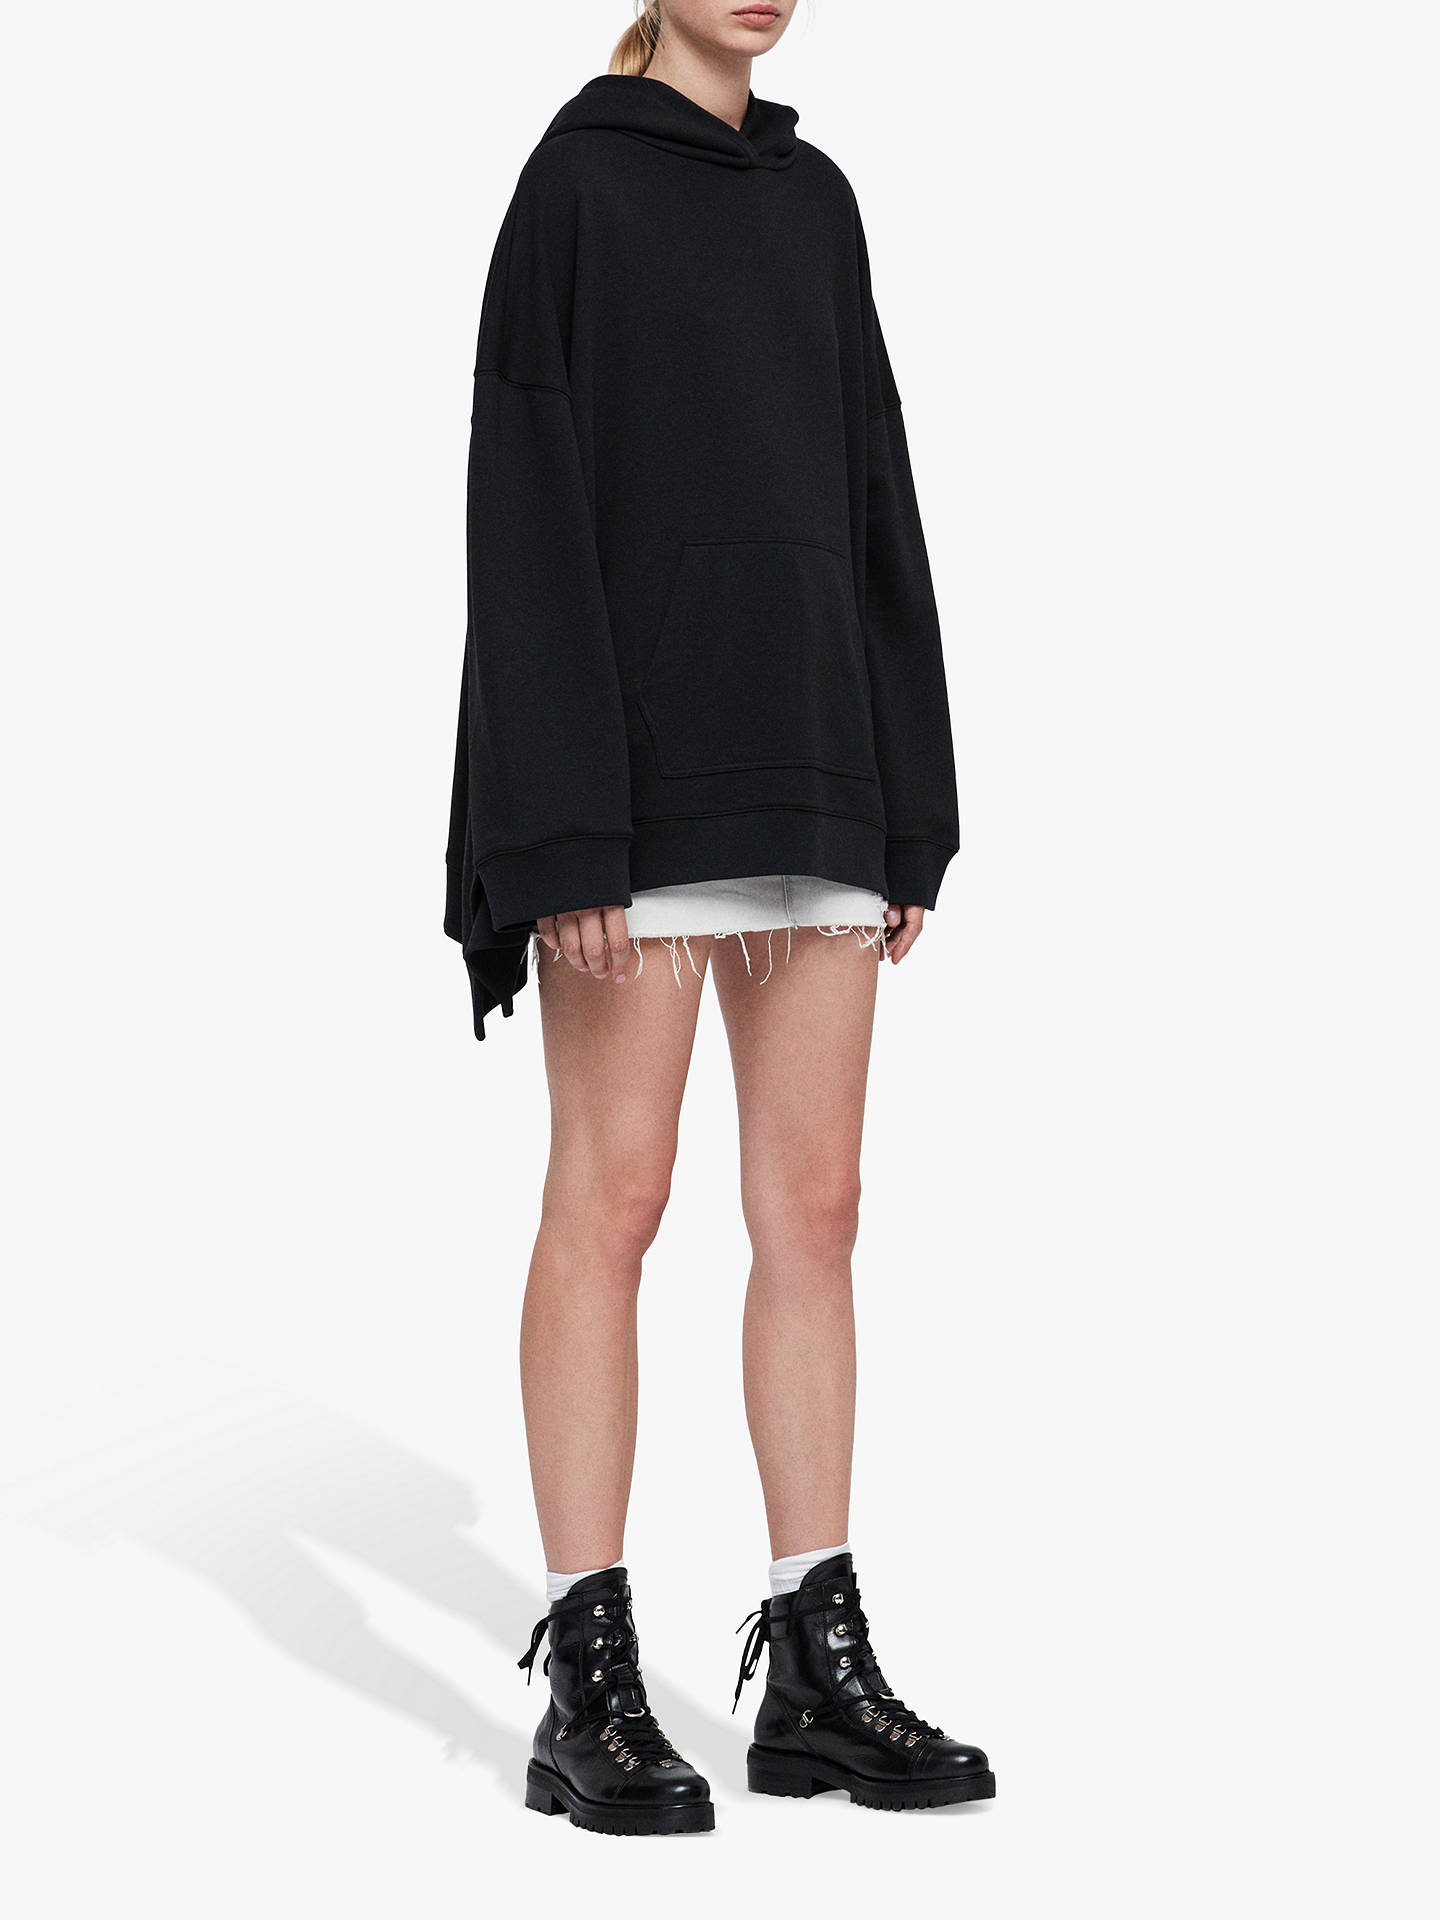 BuyAllSaints Harmon Oversized Hoodie, Jet Black, XS-S Online at johnlewis.com